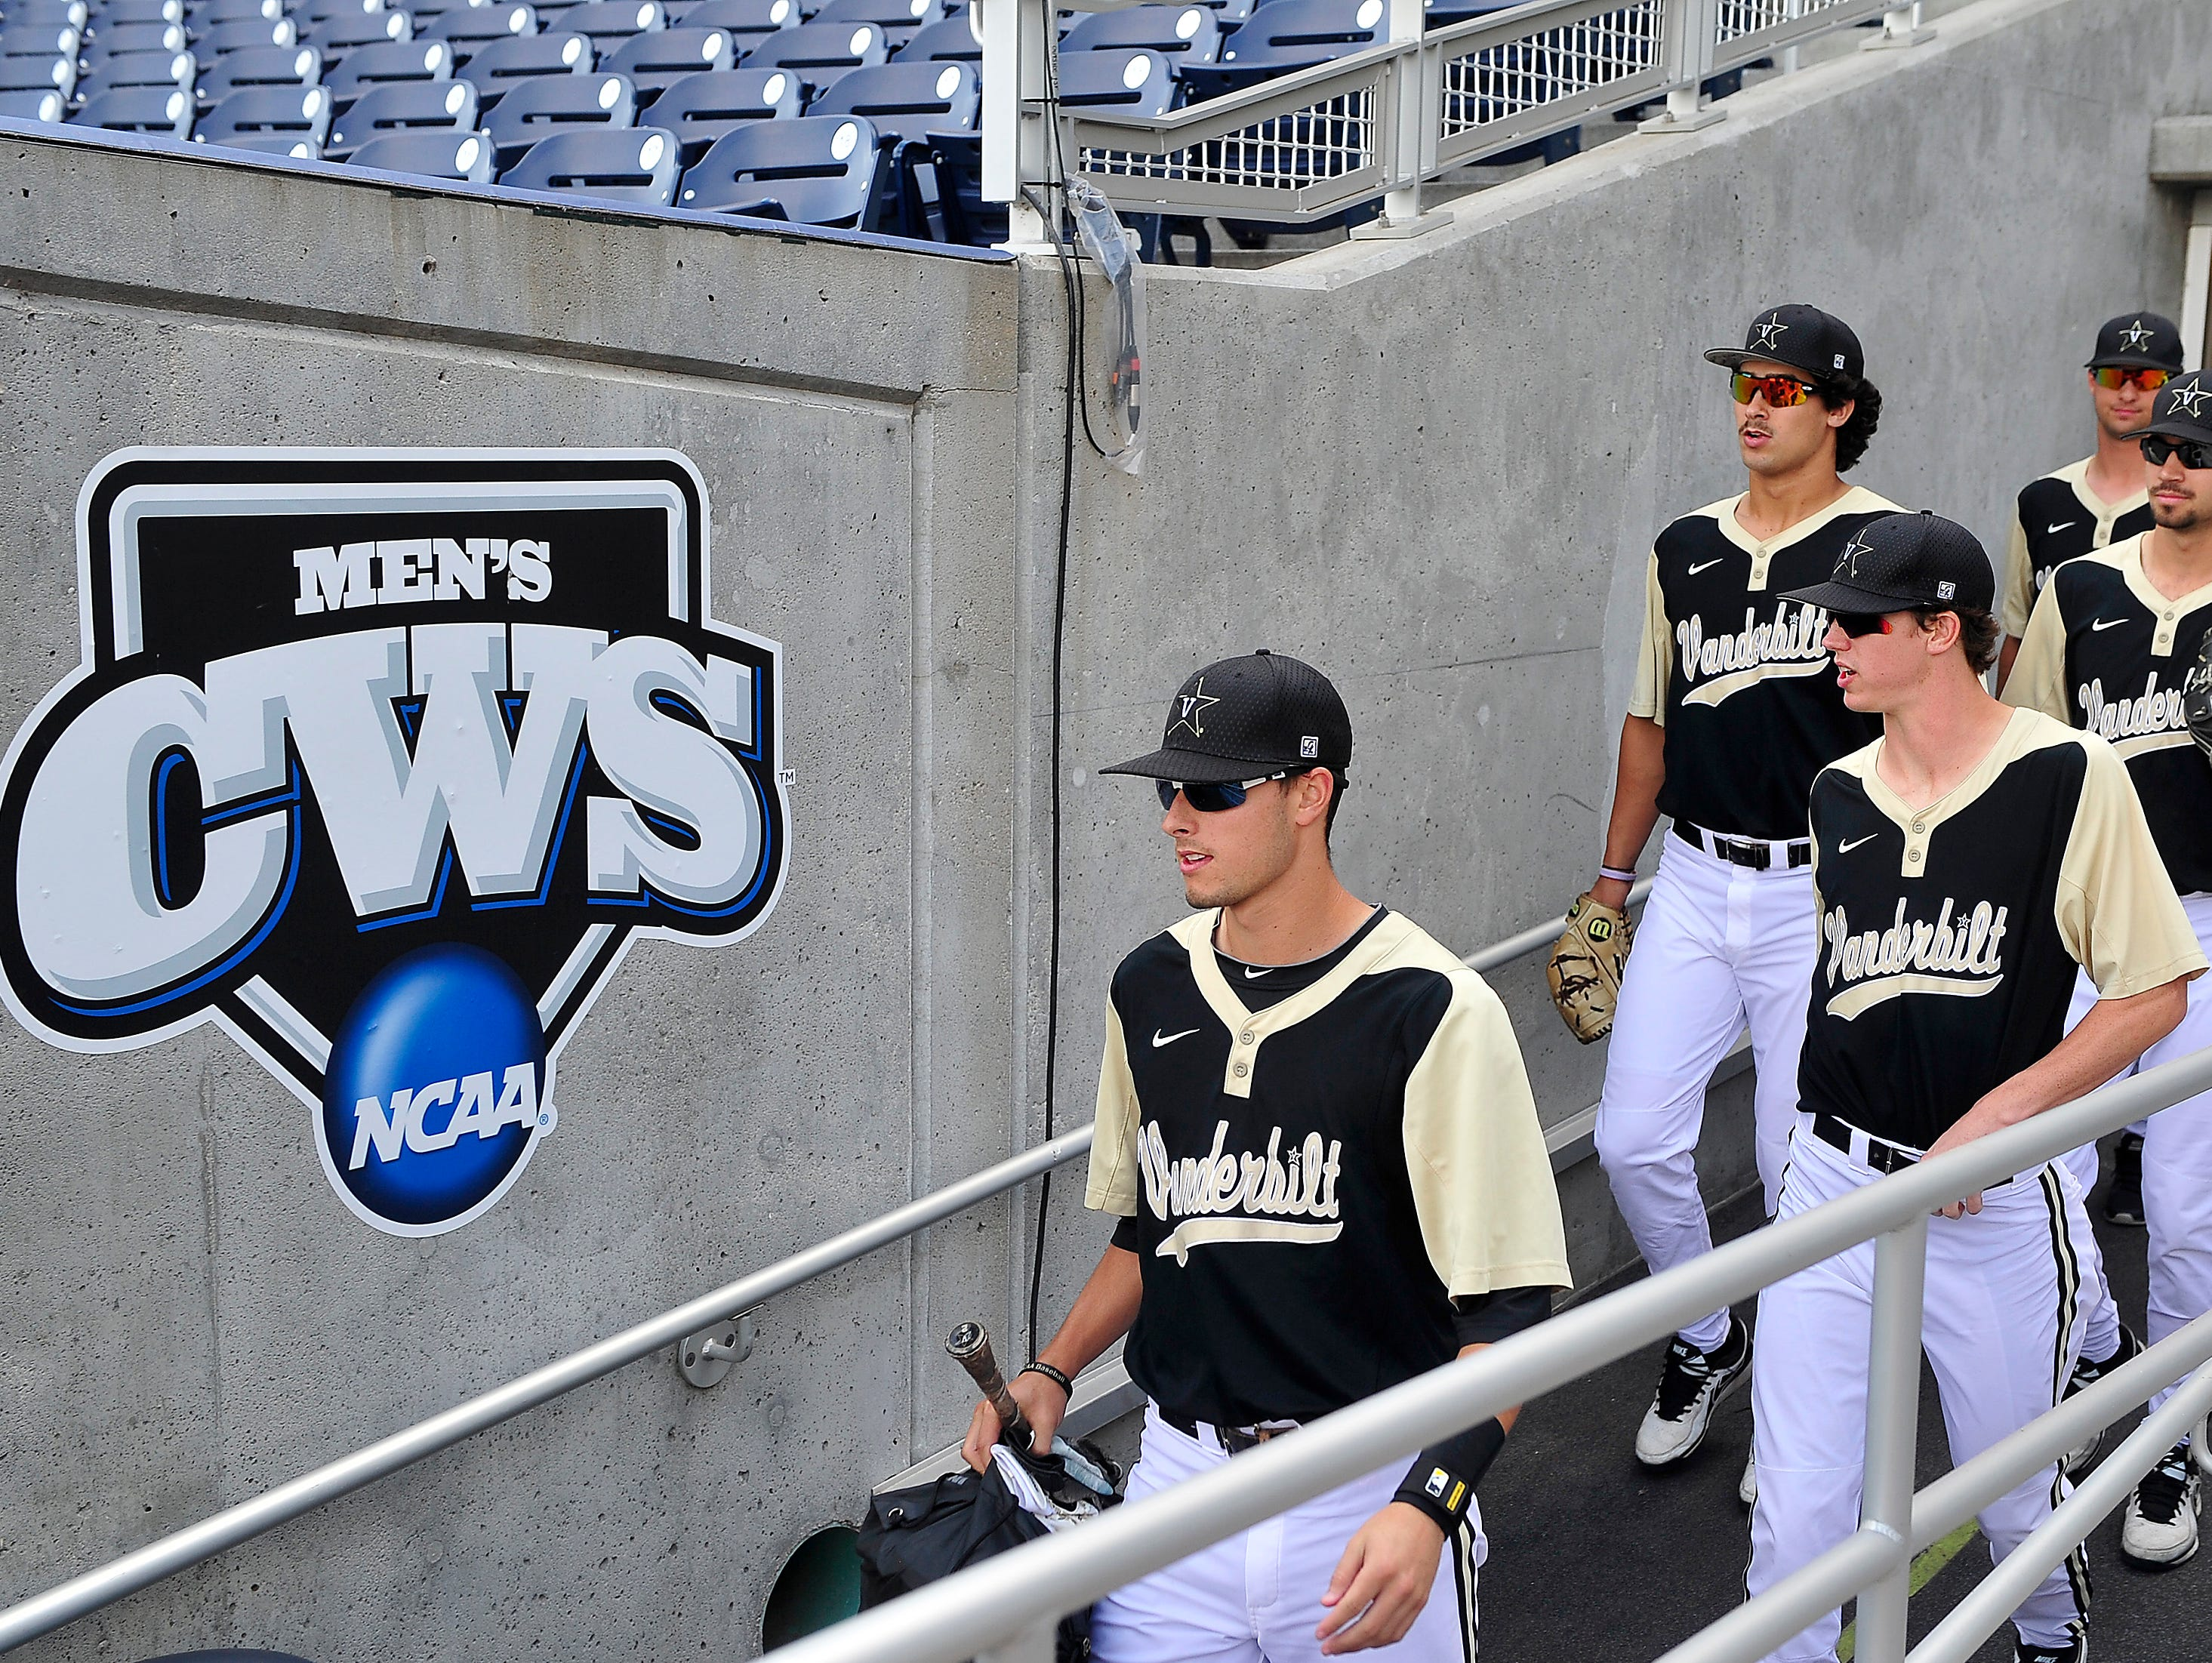 Vanderbilt players walk to the dugout to play Virginia at the College World Series at TD Ameritrade Park in Omaha, Neb., Wednesday, June 25, 2014.